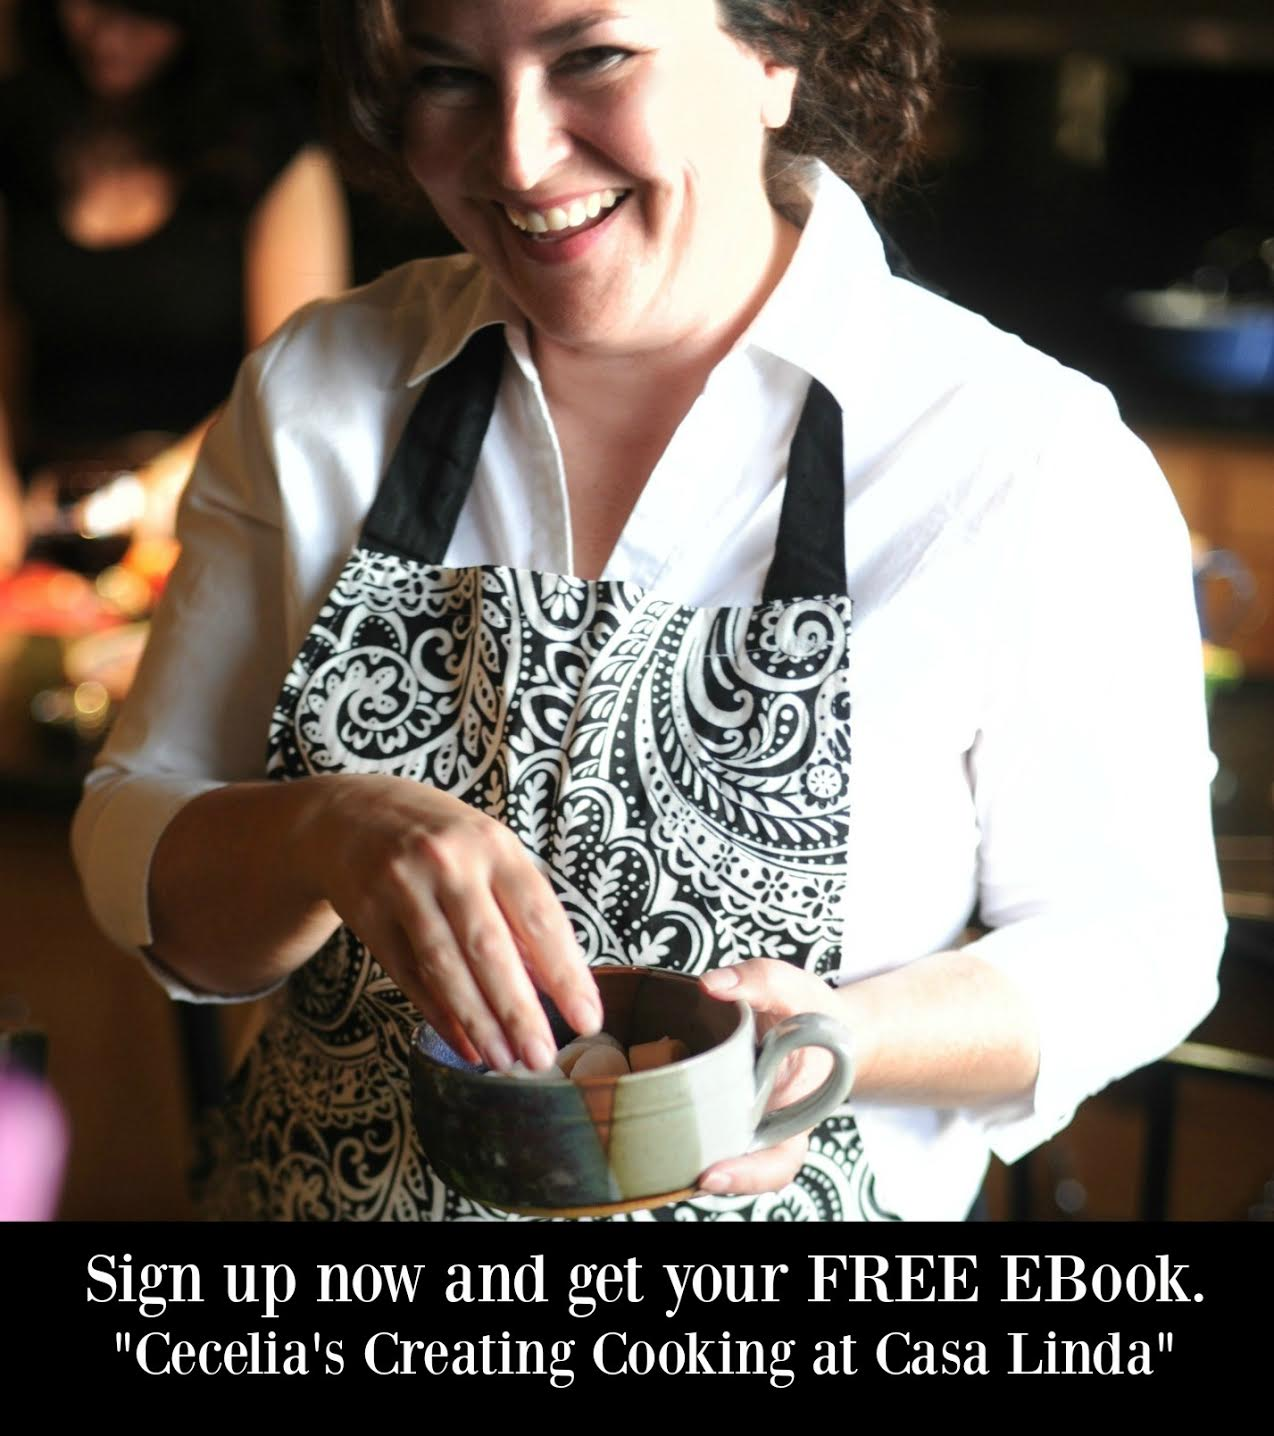 Cecelia's Good Stuff - Get a FREE Ebook when Sign up for my weekly email | www.CeceliasGoodStuff.com | Good Food for Good People